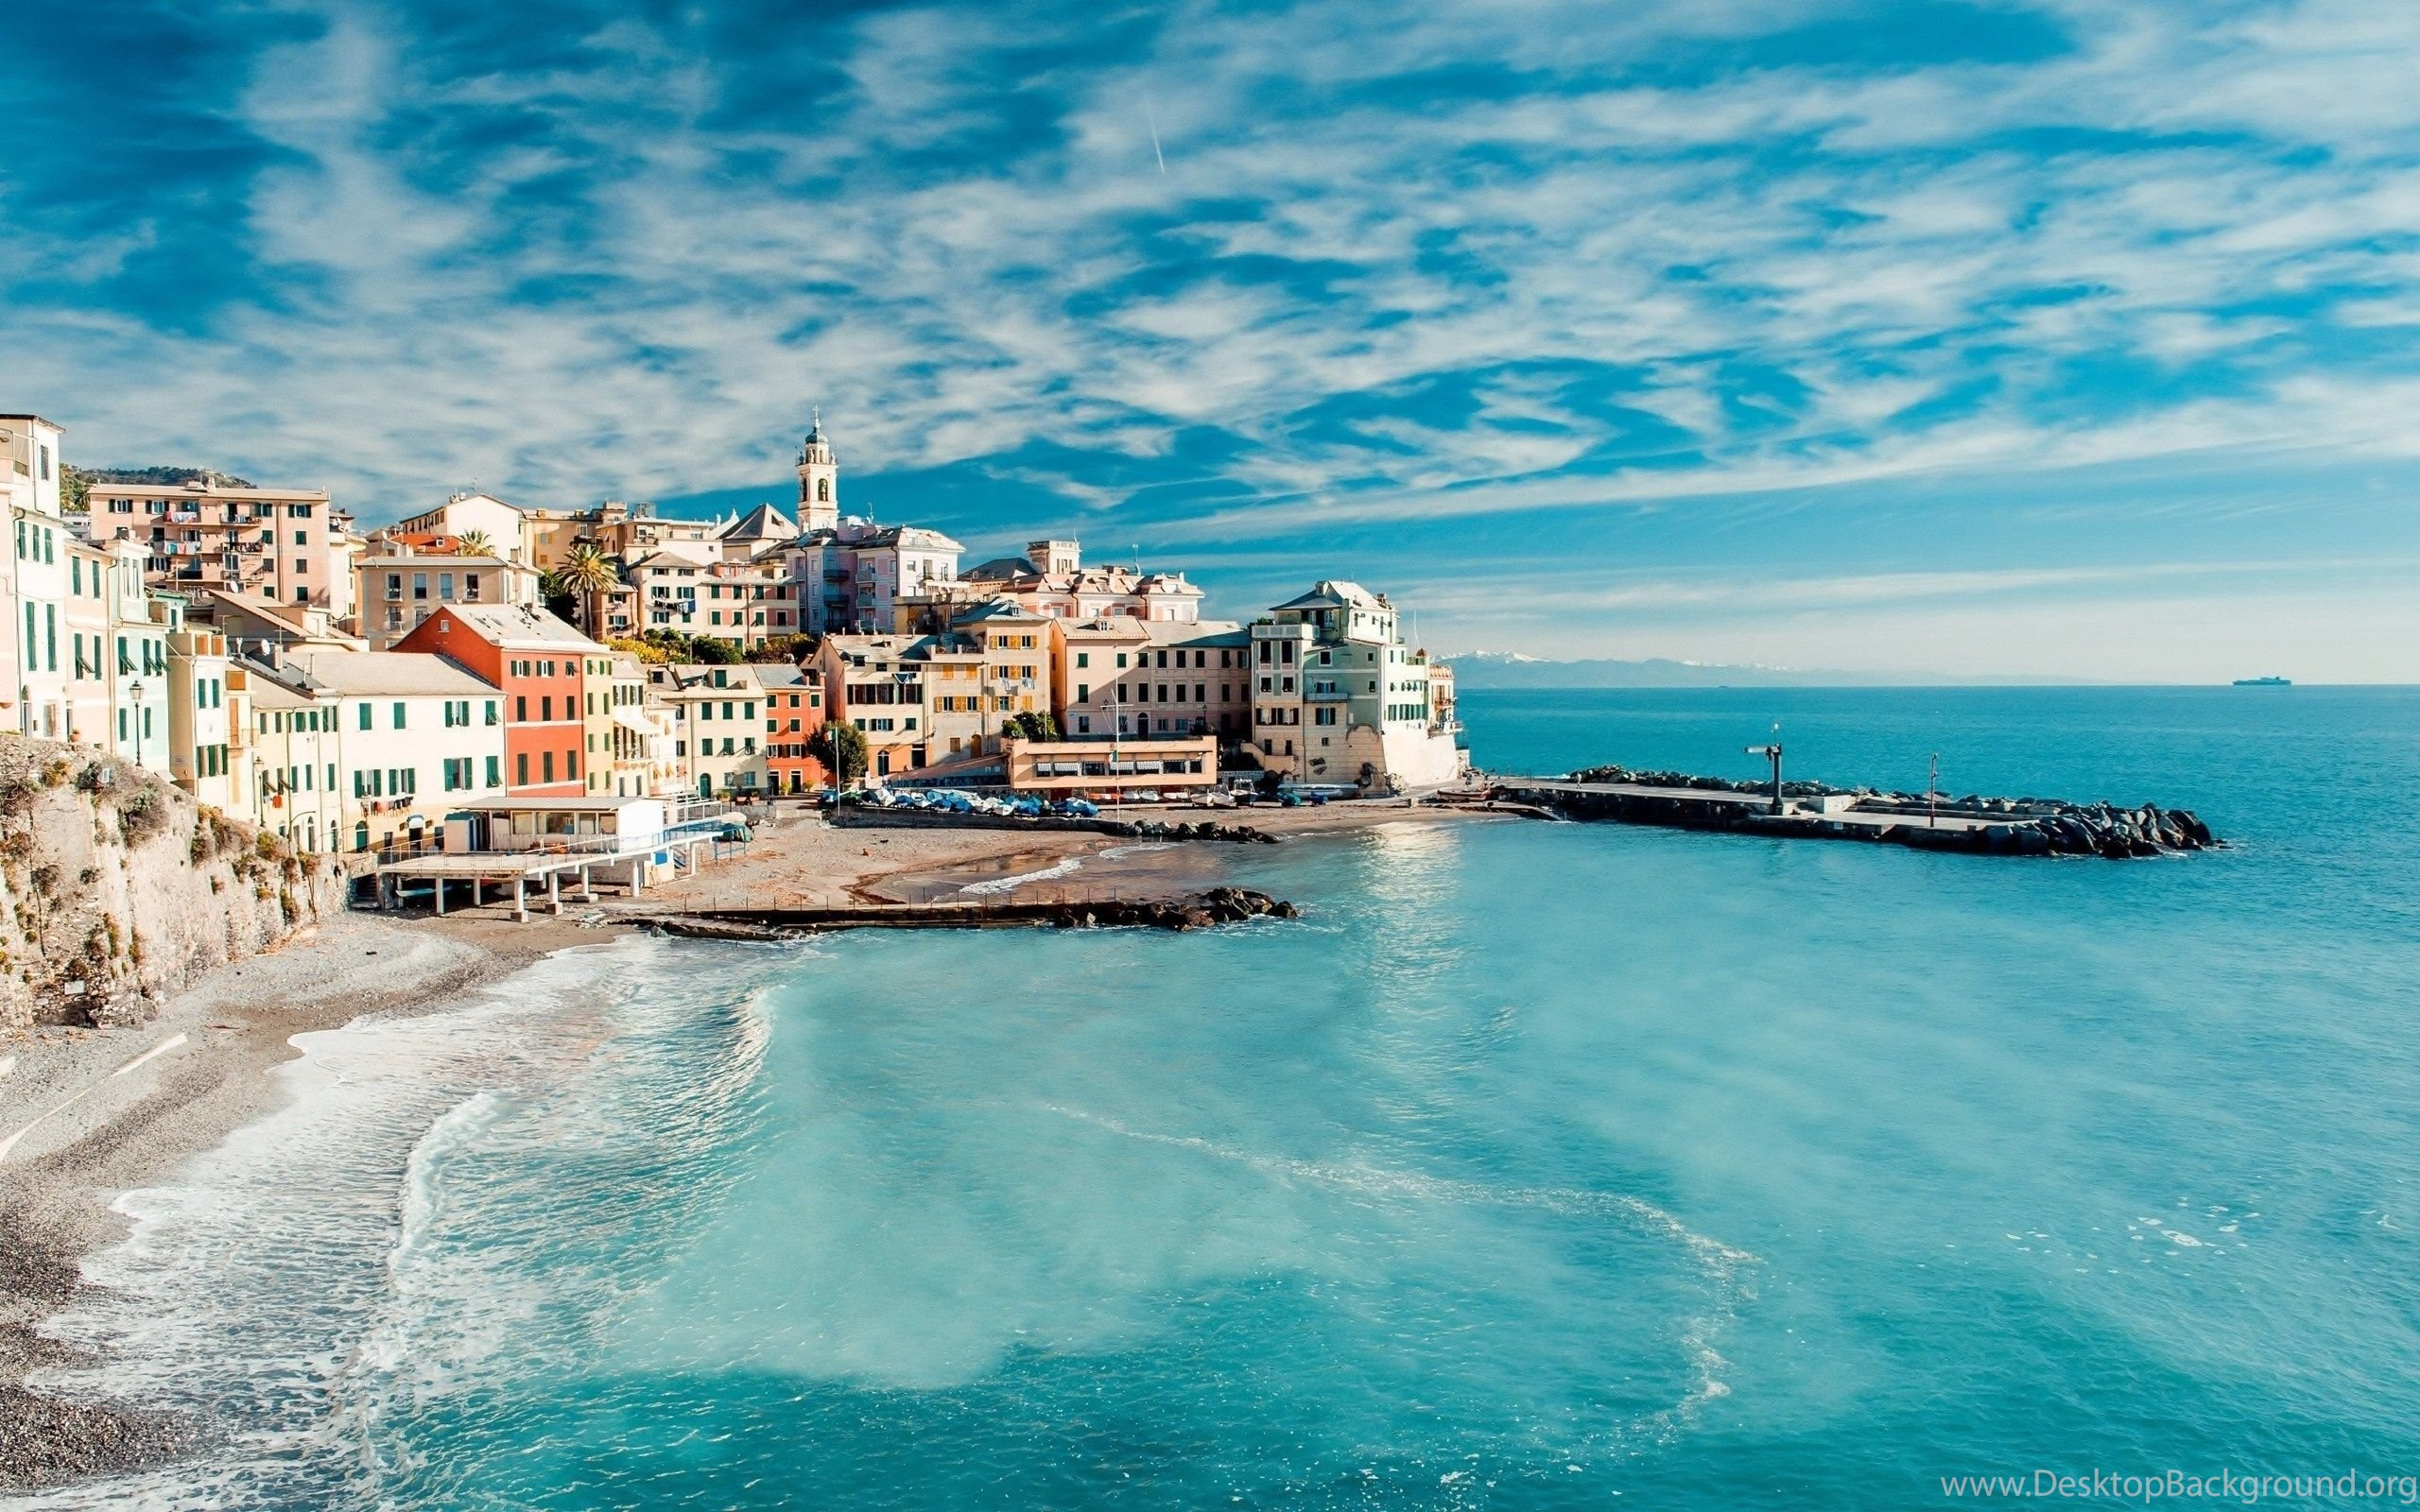 283185_9-cinque-terre-hd-wallpapers_2560x1600_h